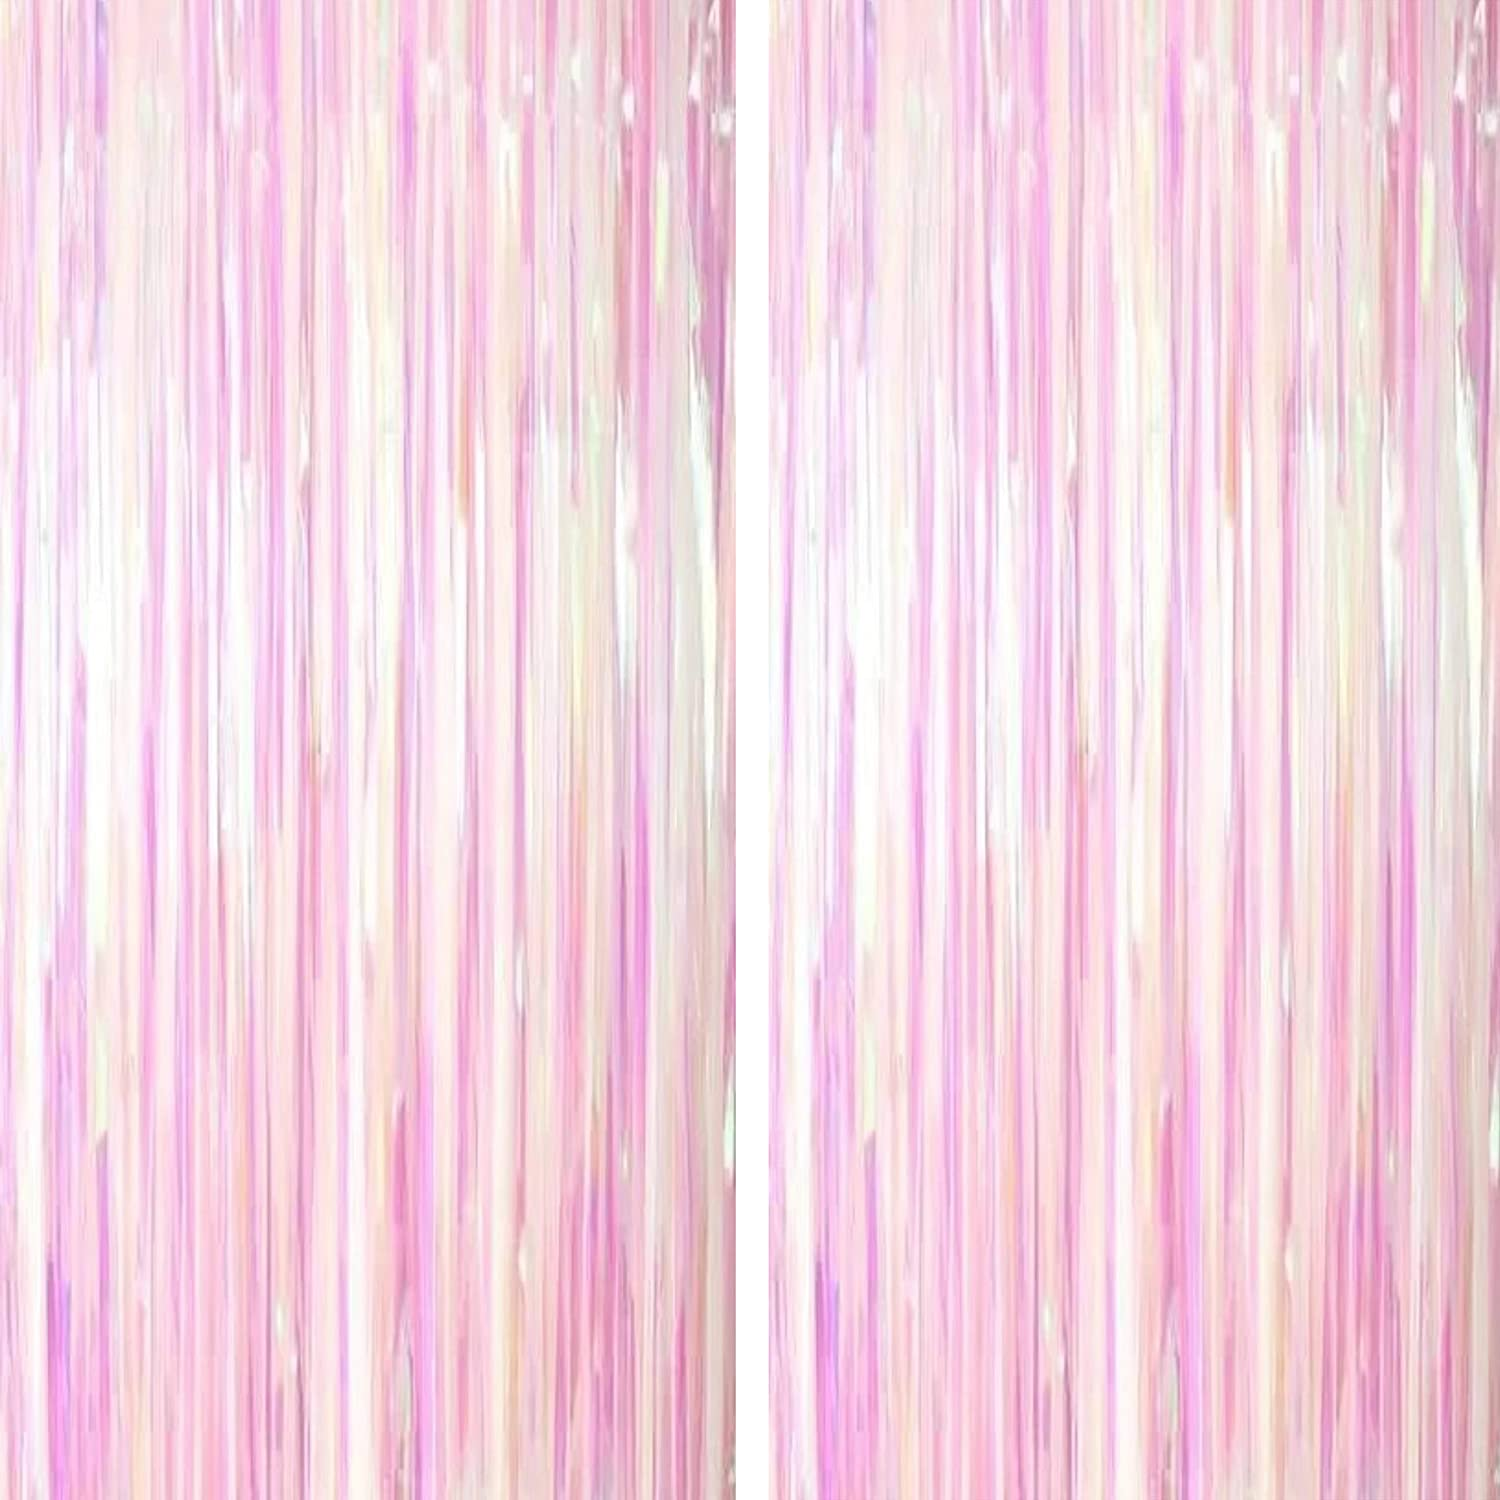 Iridescent Party Tinsel Foil Fringe Curtains - Frozen Baby Shower First Birthday White Wedding Bachelorette Valentines Party Decor Photo Booth Props Backdrops Decorations, 2pc